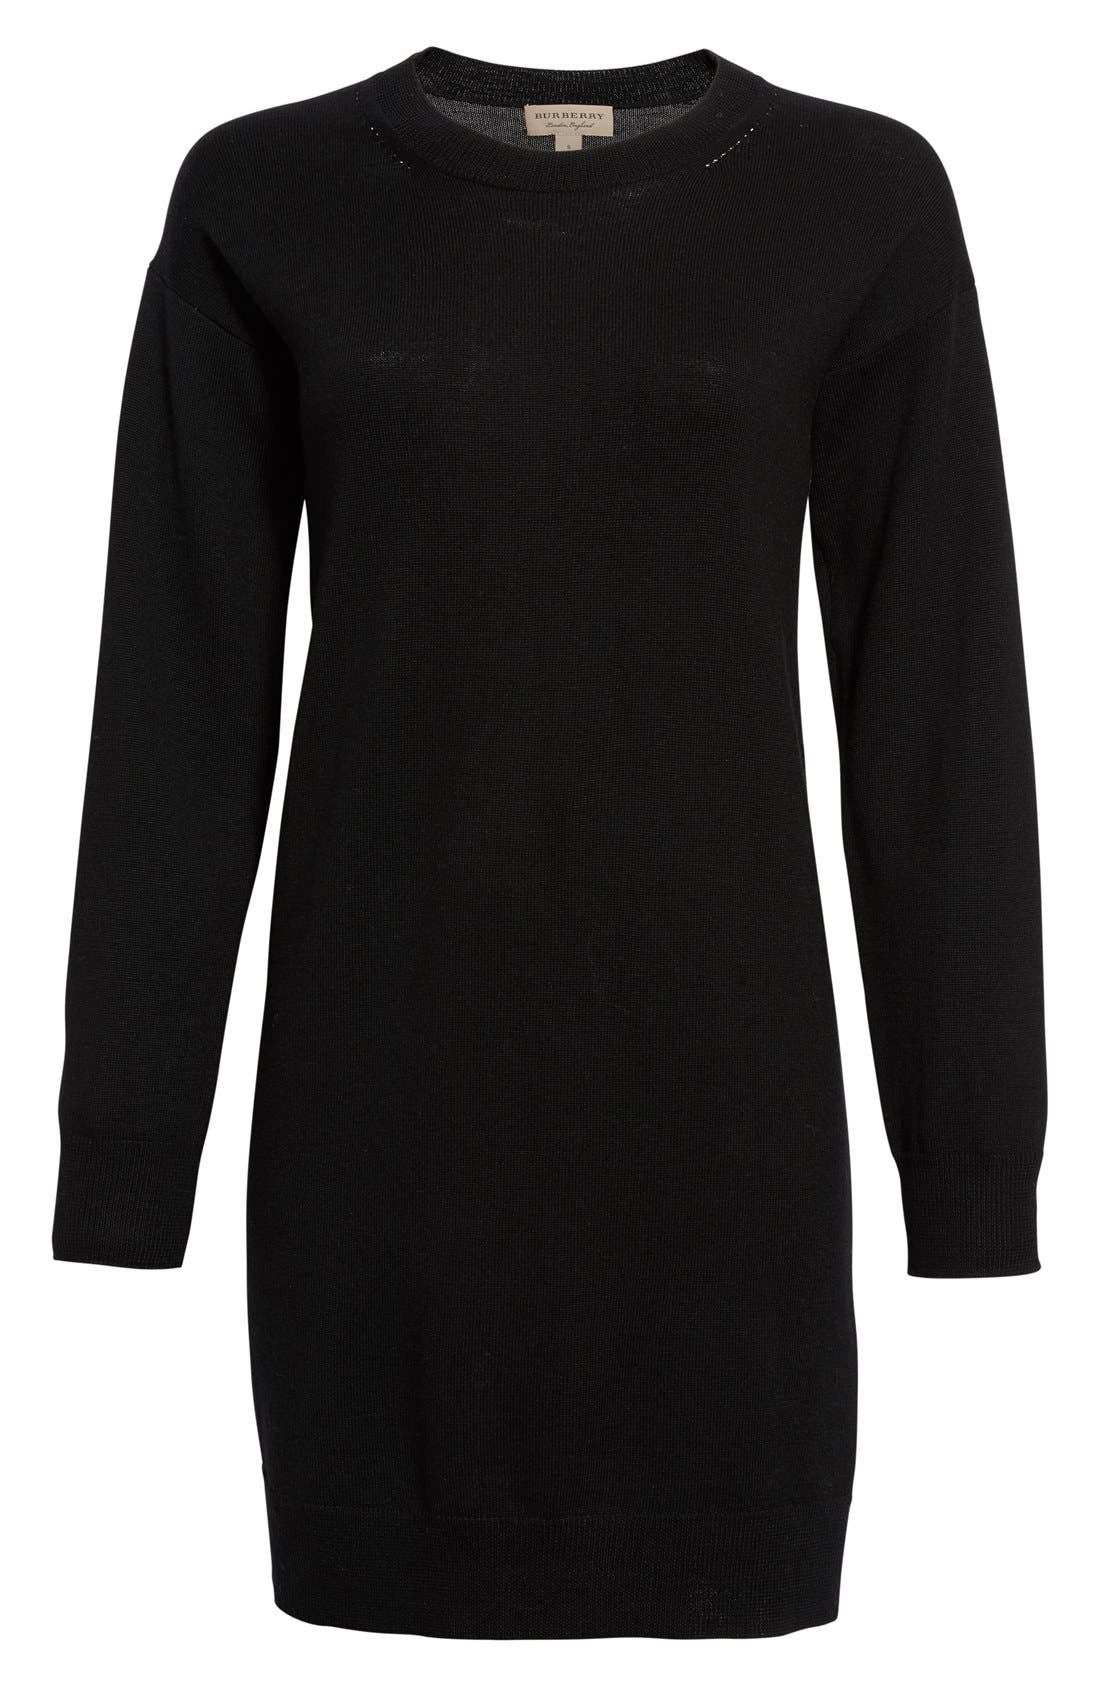 Alewater Elbow Patch Merino Wool Dress,                             Alternate thumbnail 11, color,                             BLACK